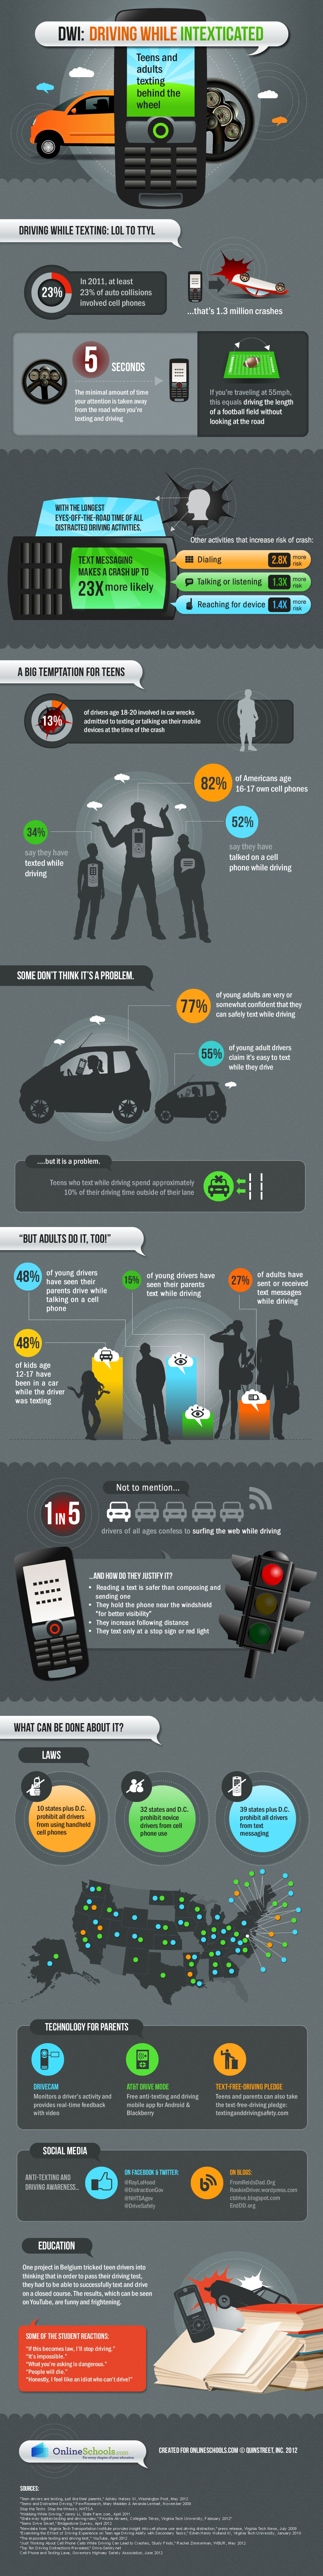 Driving-While-Intexticated-infographic